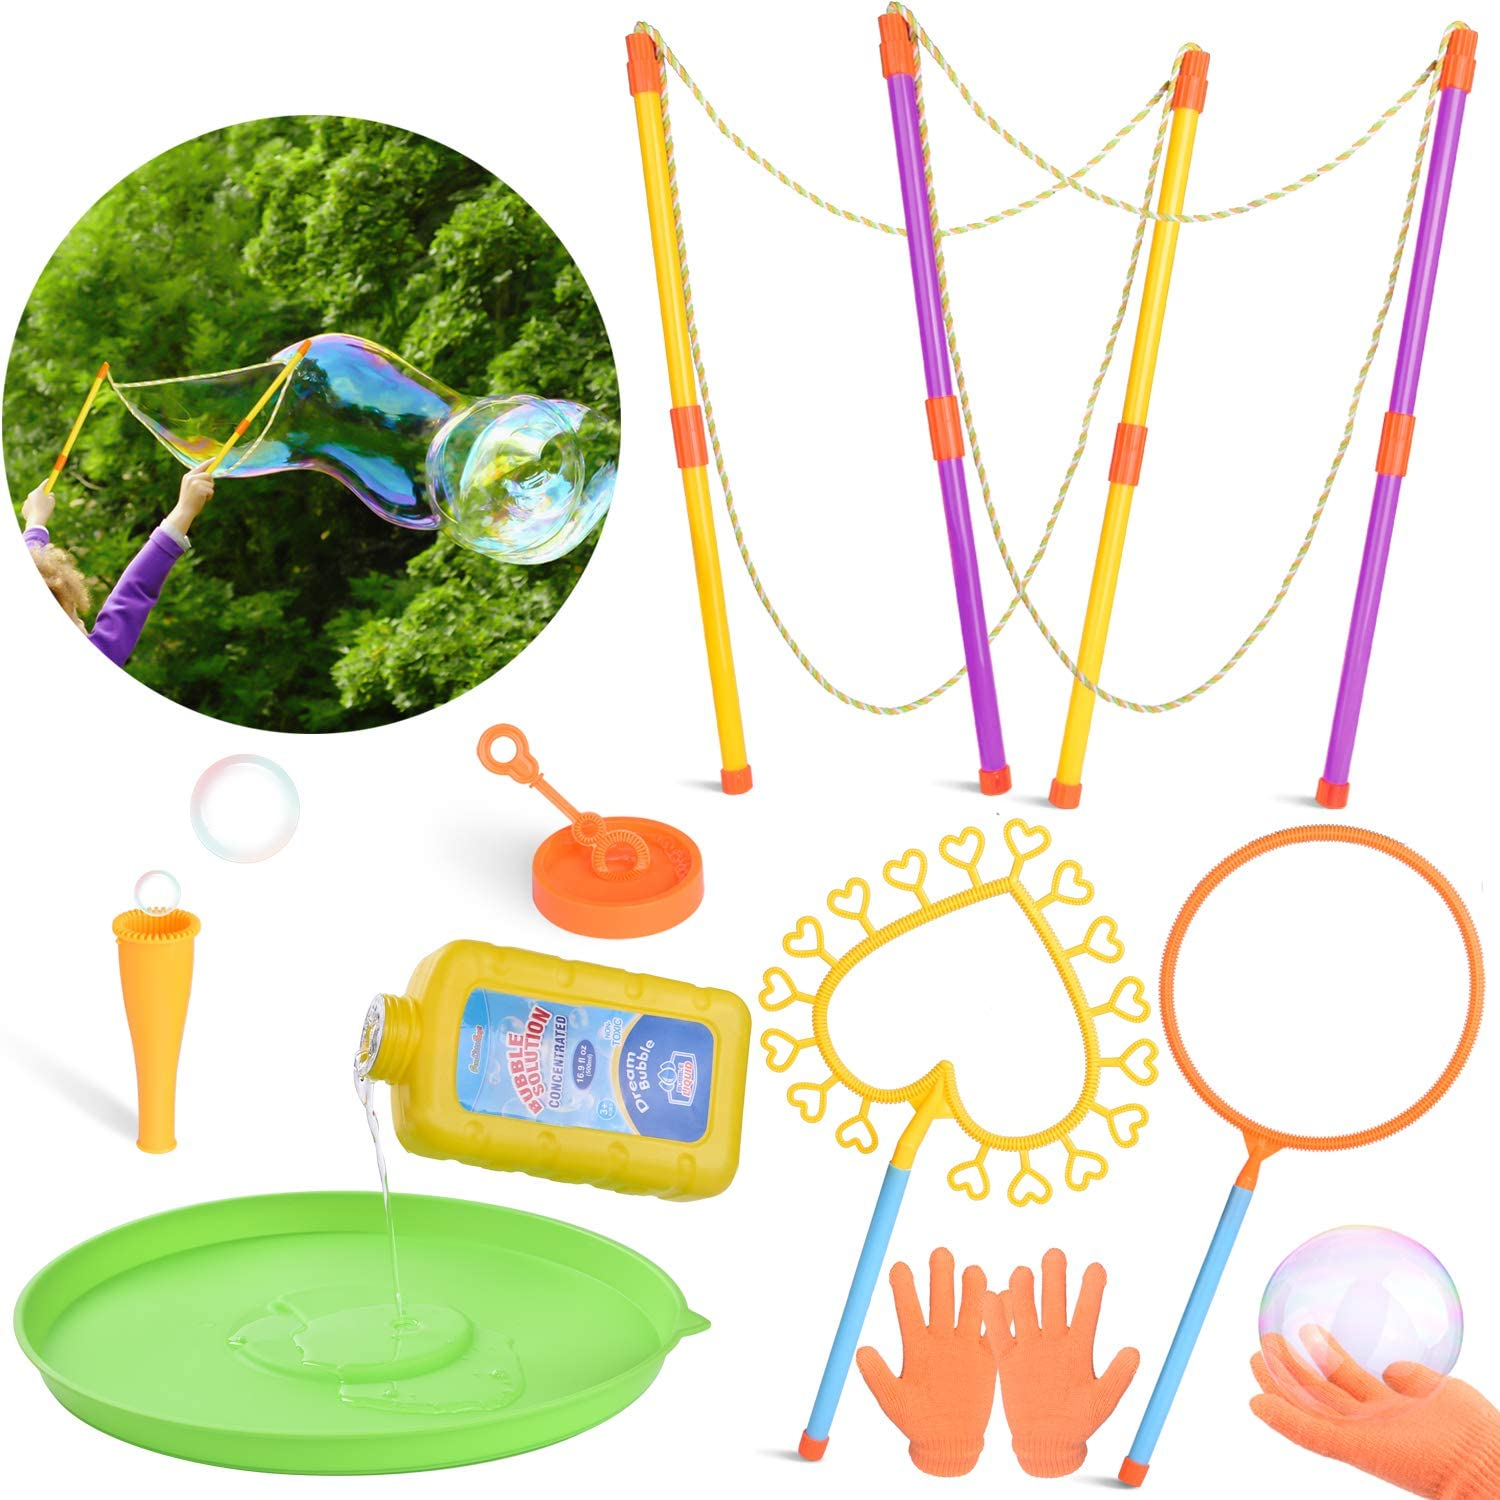 FUN LITTLE TOYS 10 Pack Giant Bubble Wands Set for Kids, Summer Birthday Party Favors for Kids, Kids Outdoor Toys Set